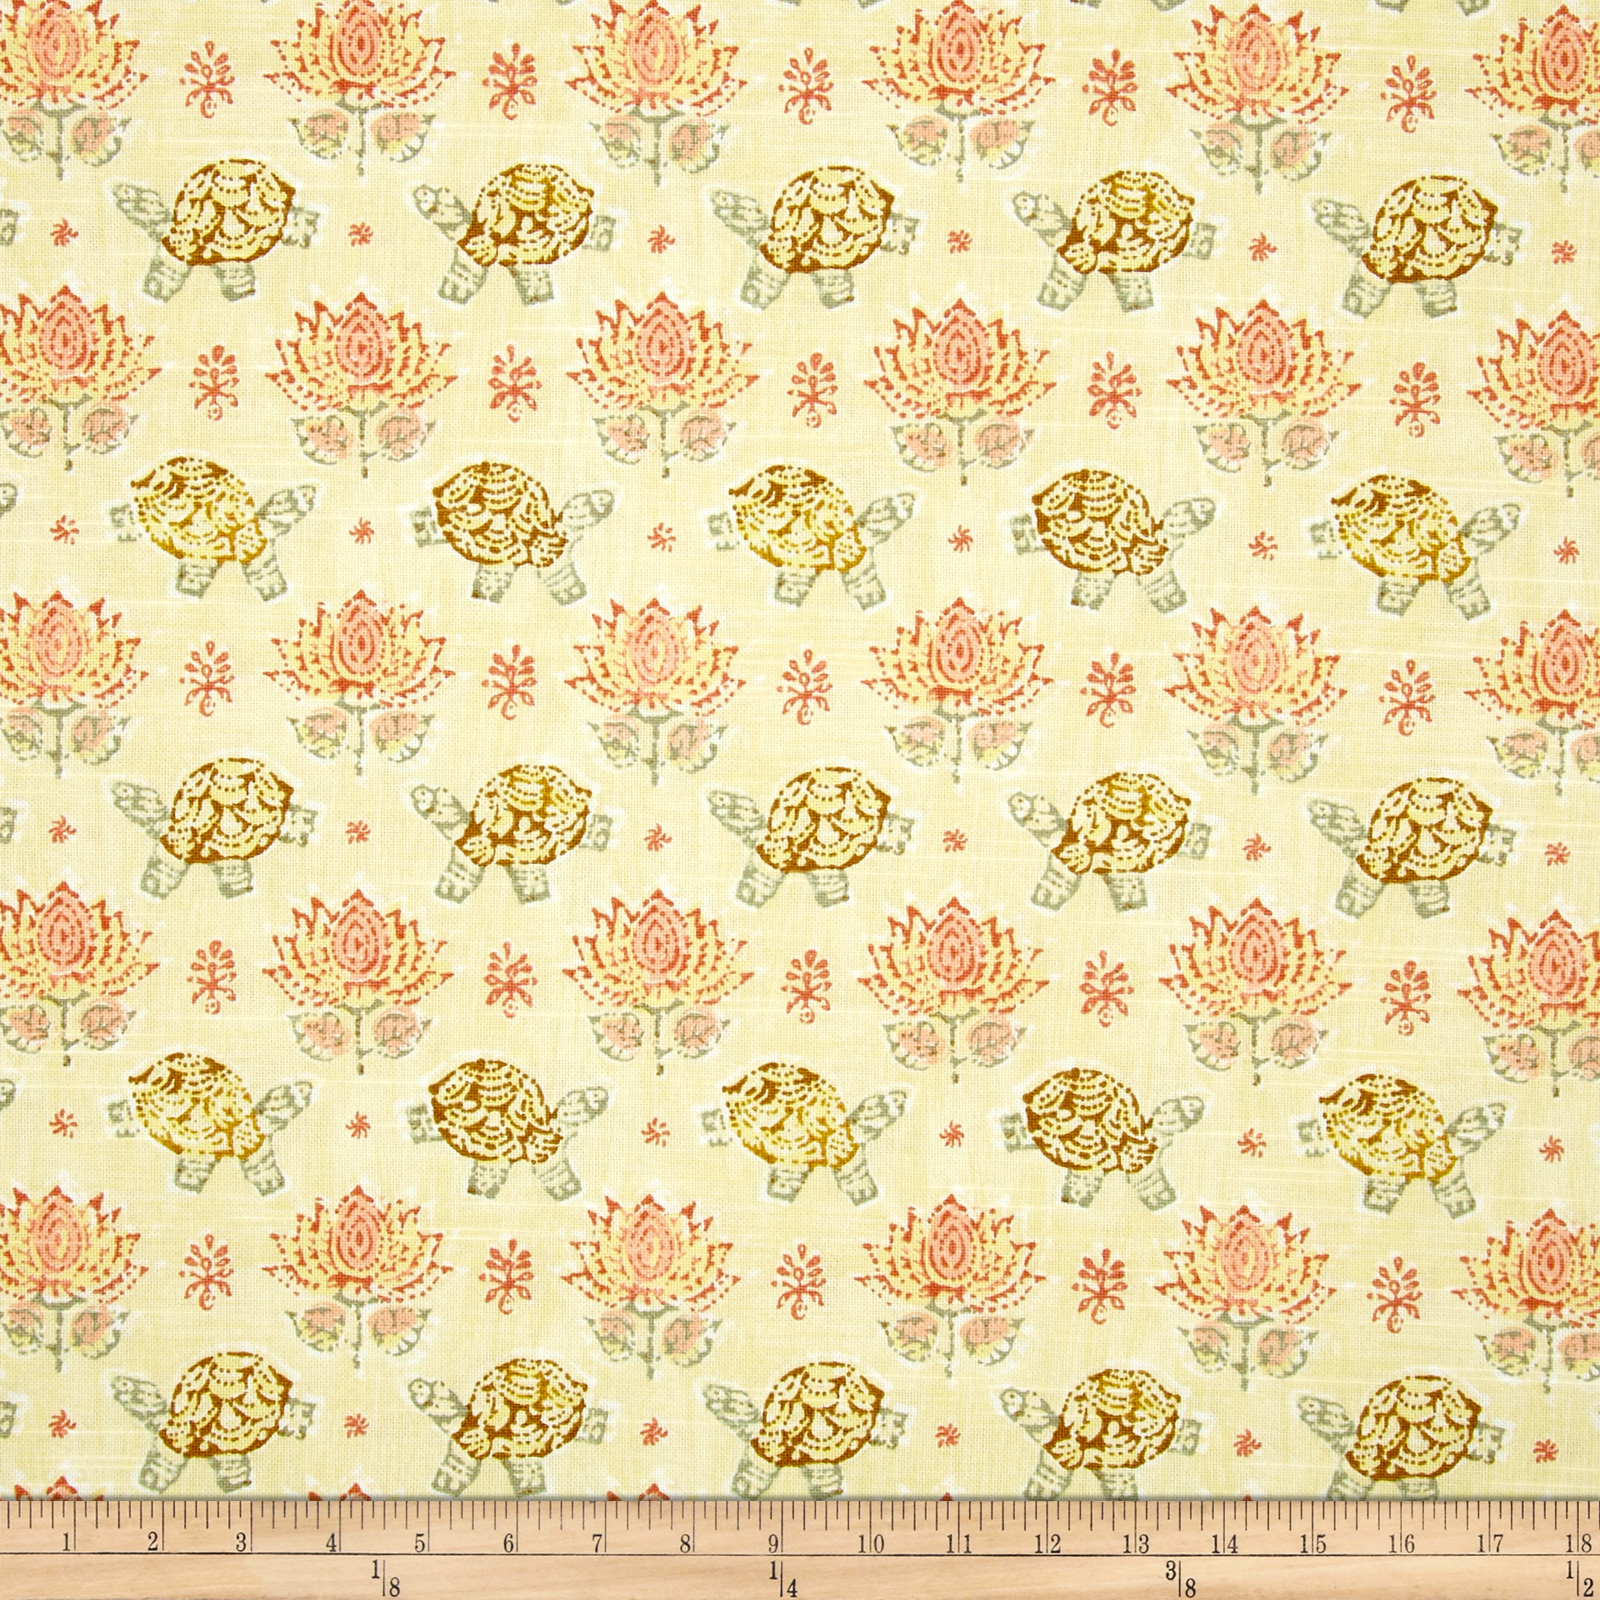 Waverly Mandana Slub Rosewater Fabric